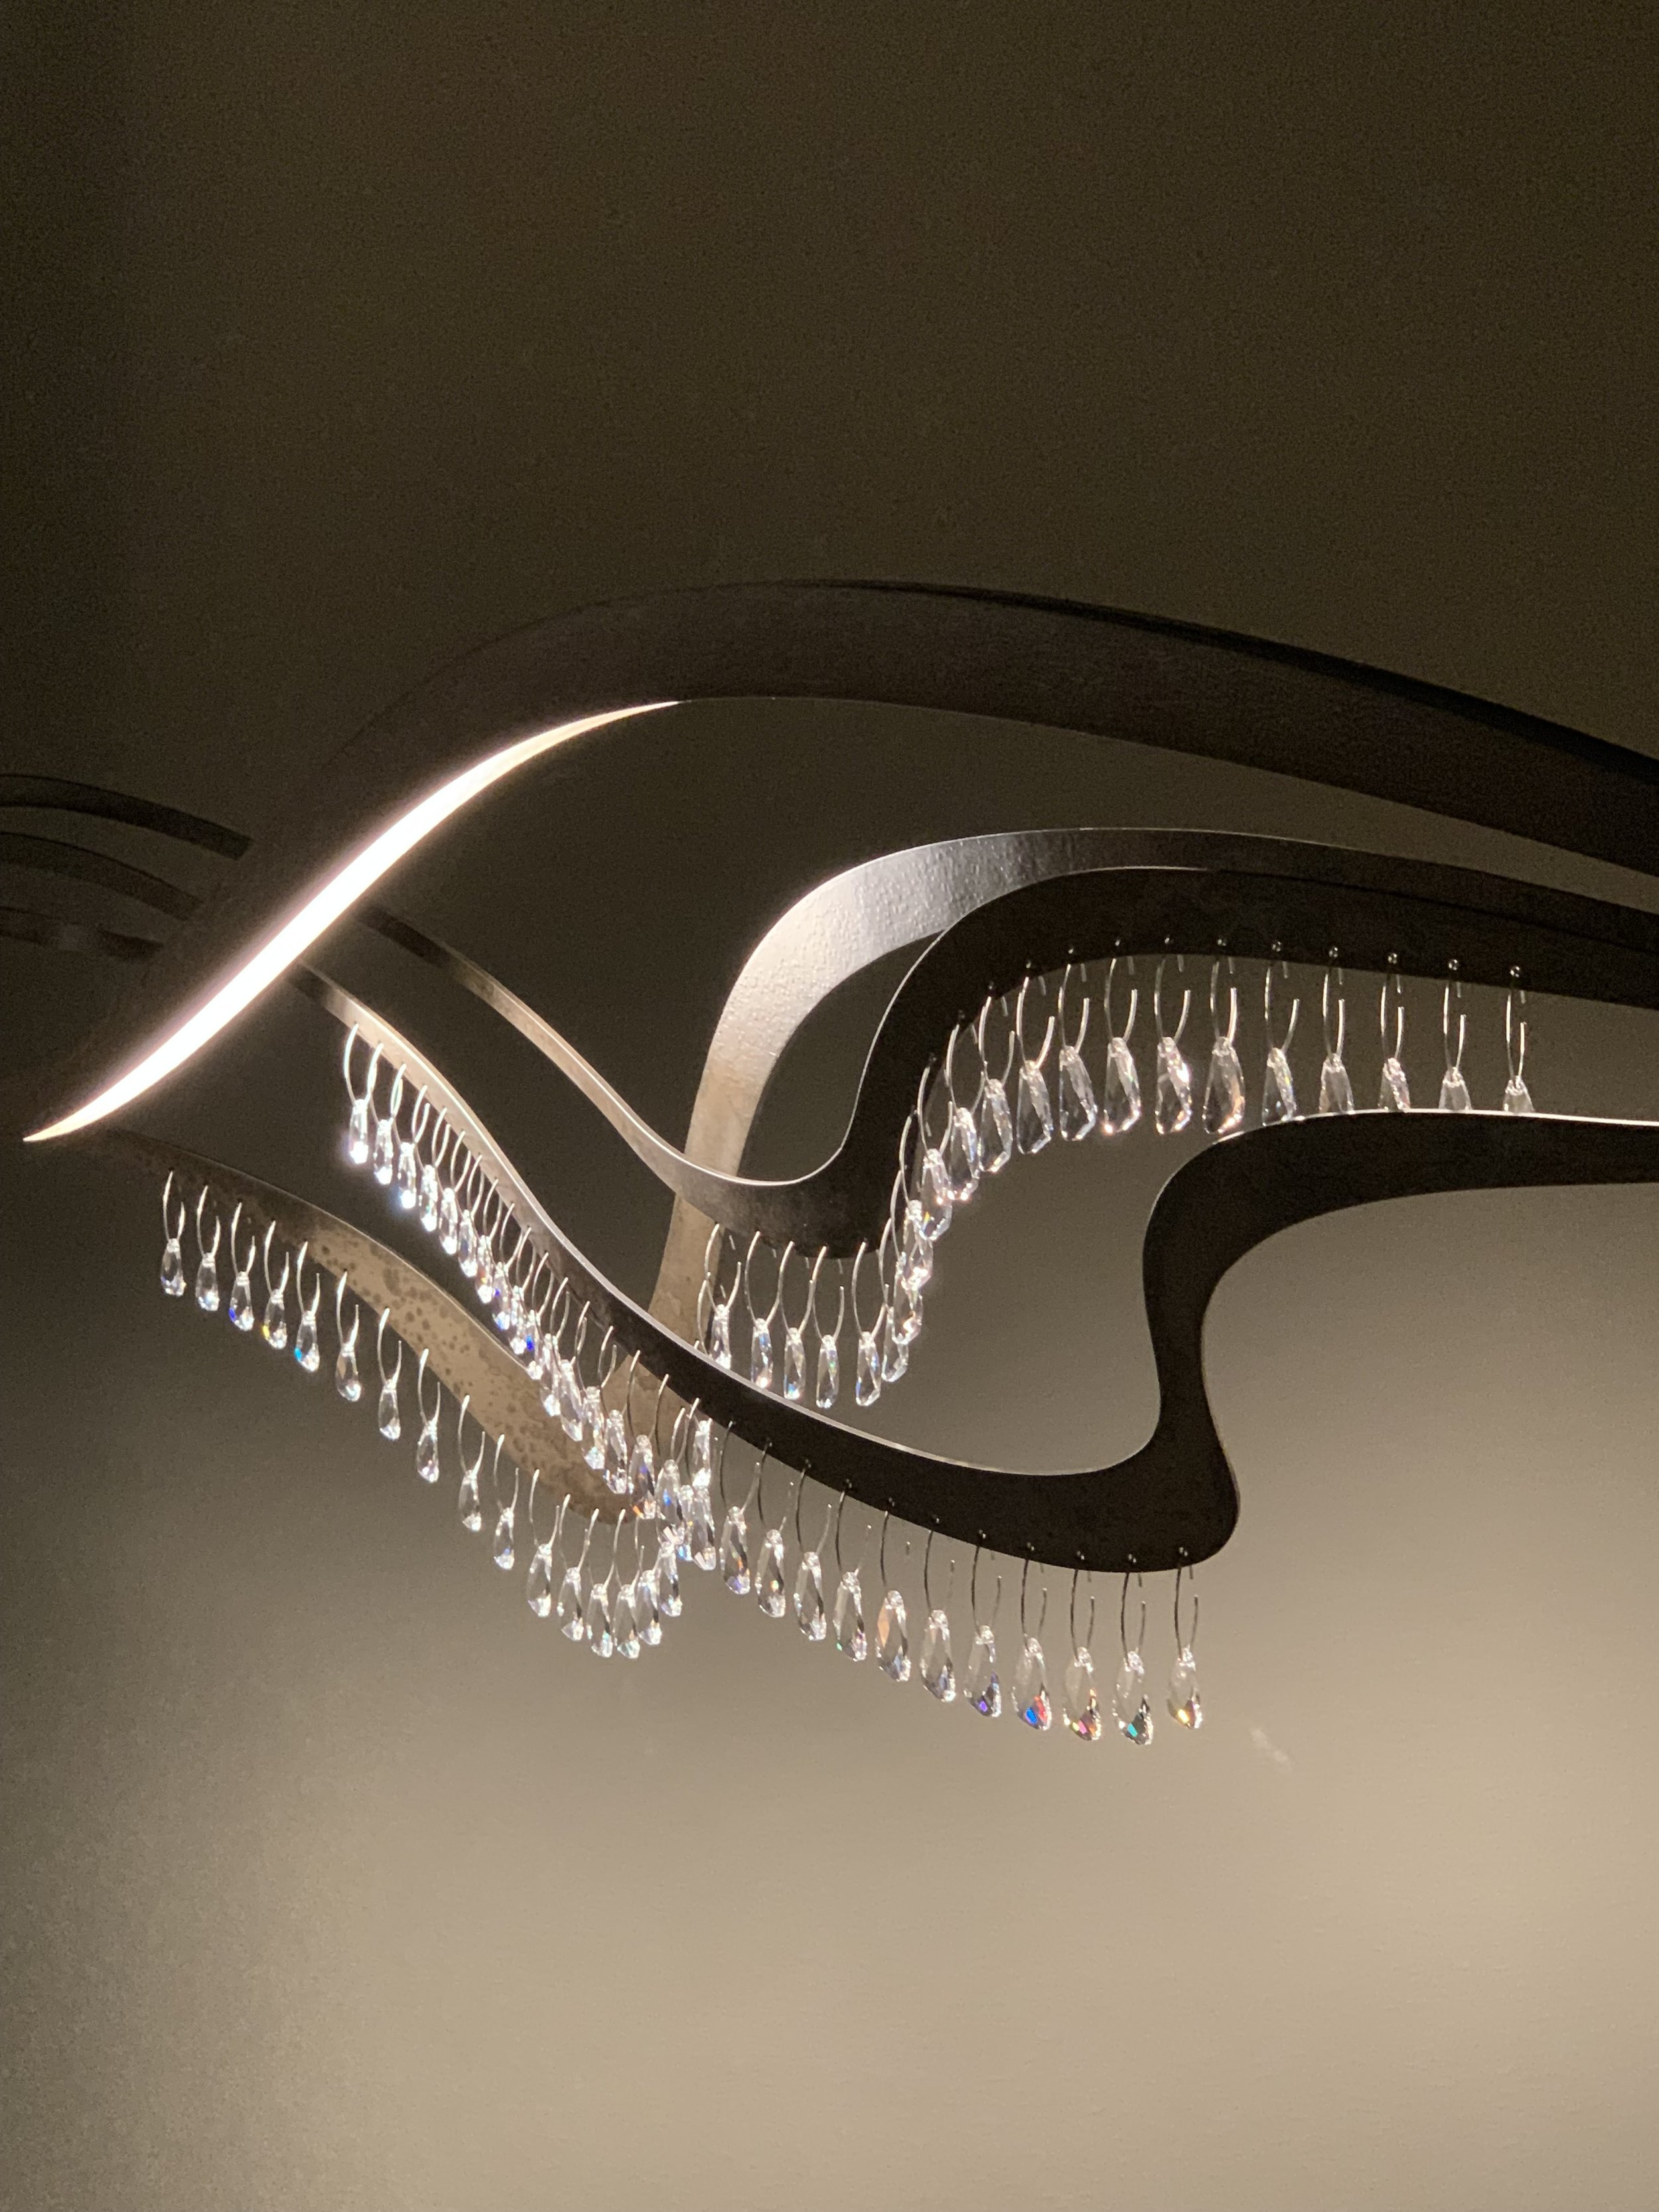 New lighting fixture from Hubbardton Forge's SYNCHRONICITY collection, photo by Leslie Carothers .jpg